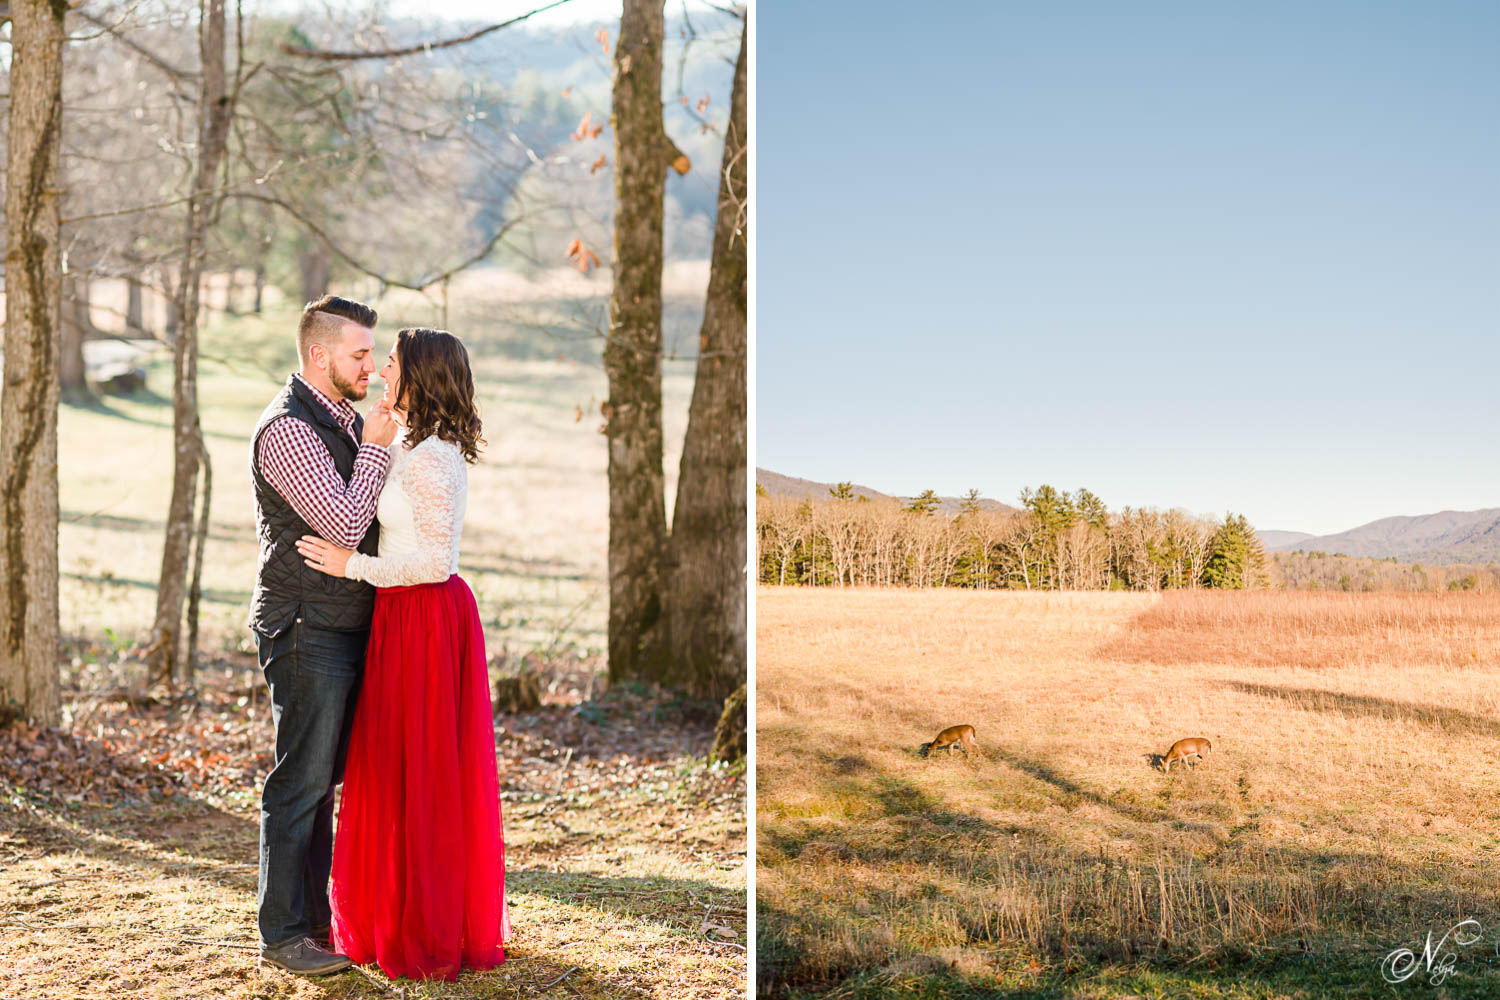 prewedding photos of engaged couple outdoors in january in the mountains of Tennessee. And random deer just eating grass in the winter.